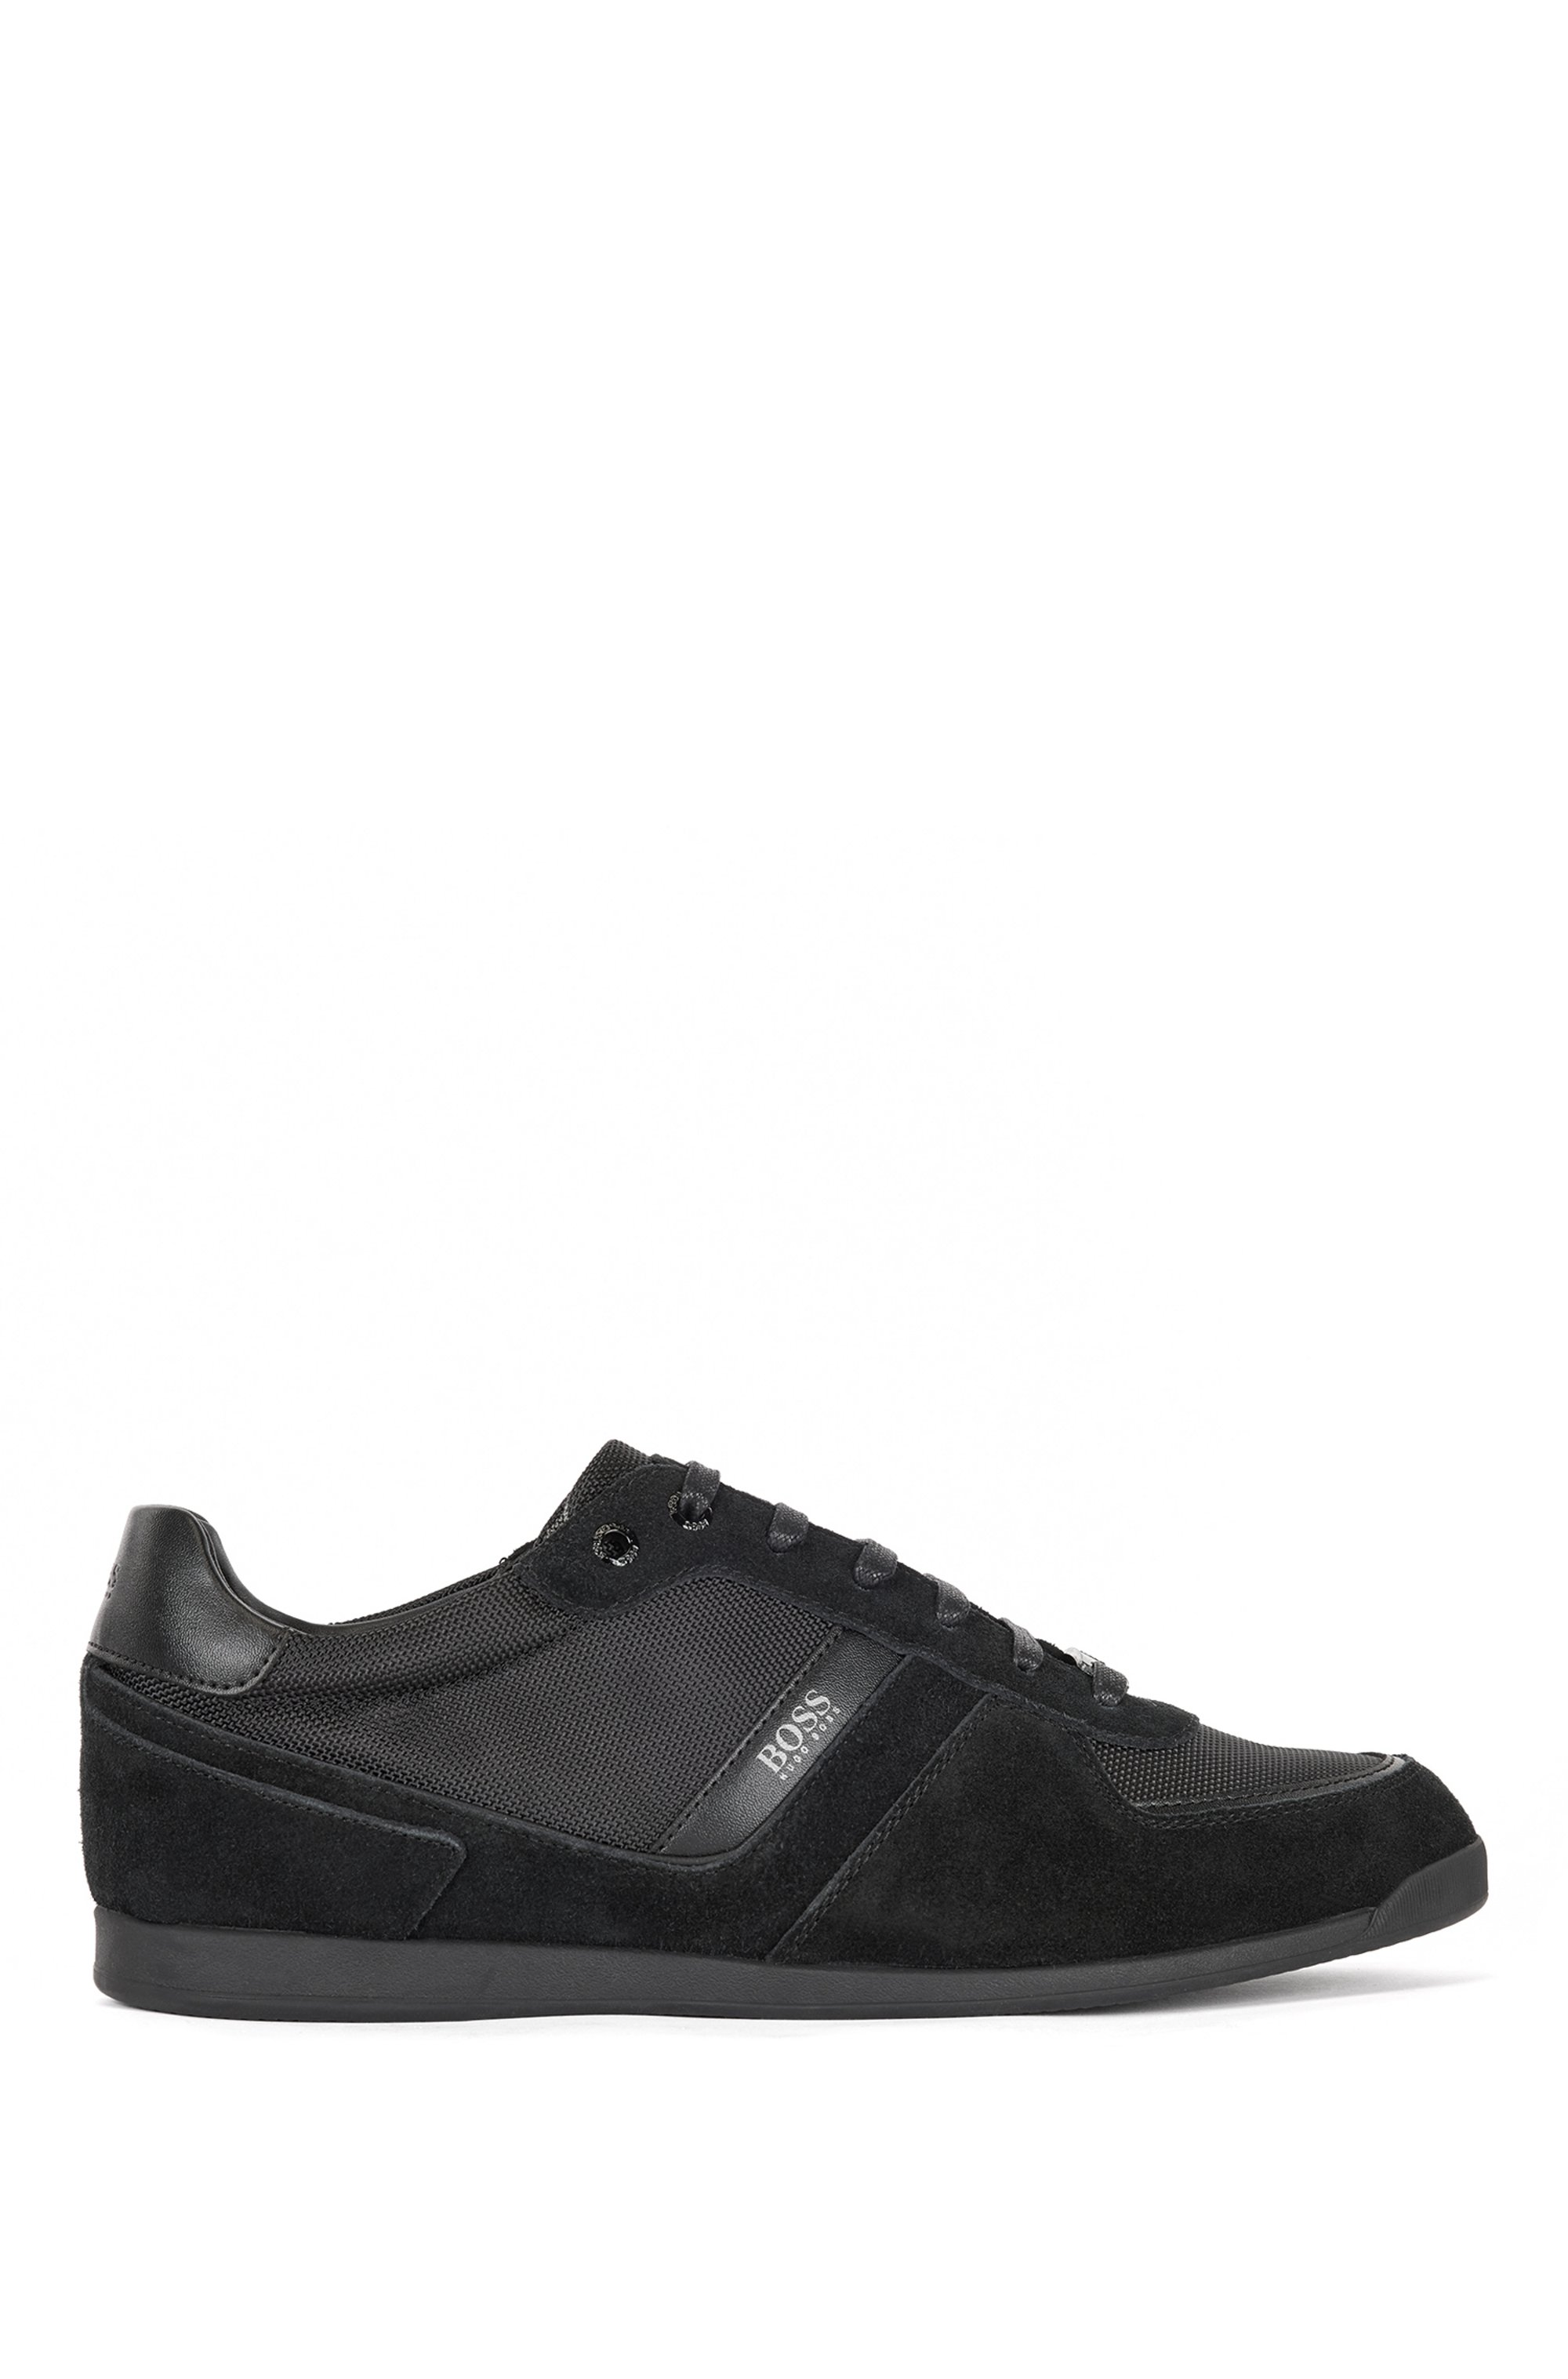 Low-top trainers in leather, suede and technical fabric, Black